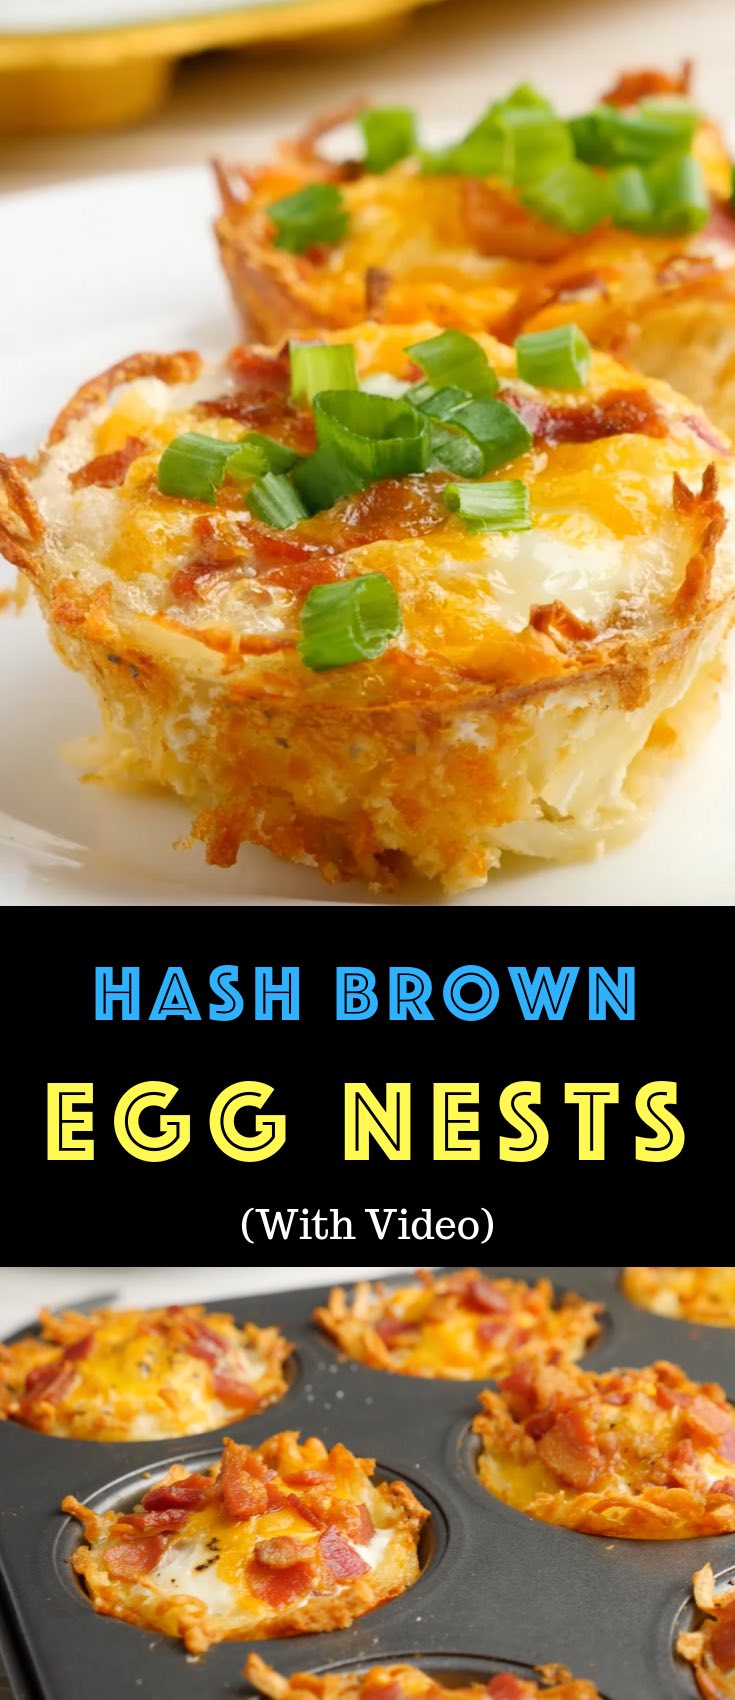 Hash Brown Egg Nests are a delicious breakfast or brunch idea you can make ahead. They're soft on the inside, and crispy golden on the outside. They're great for a quick weekday breakfast, and also perfect for feeding a crowd. Plus, video tutorial!